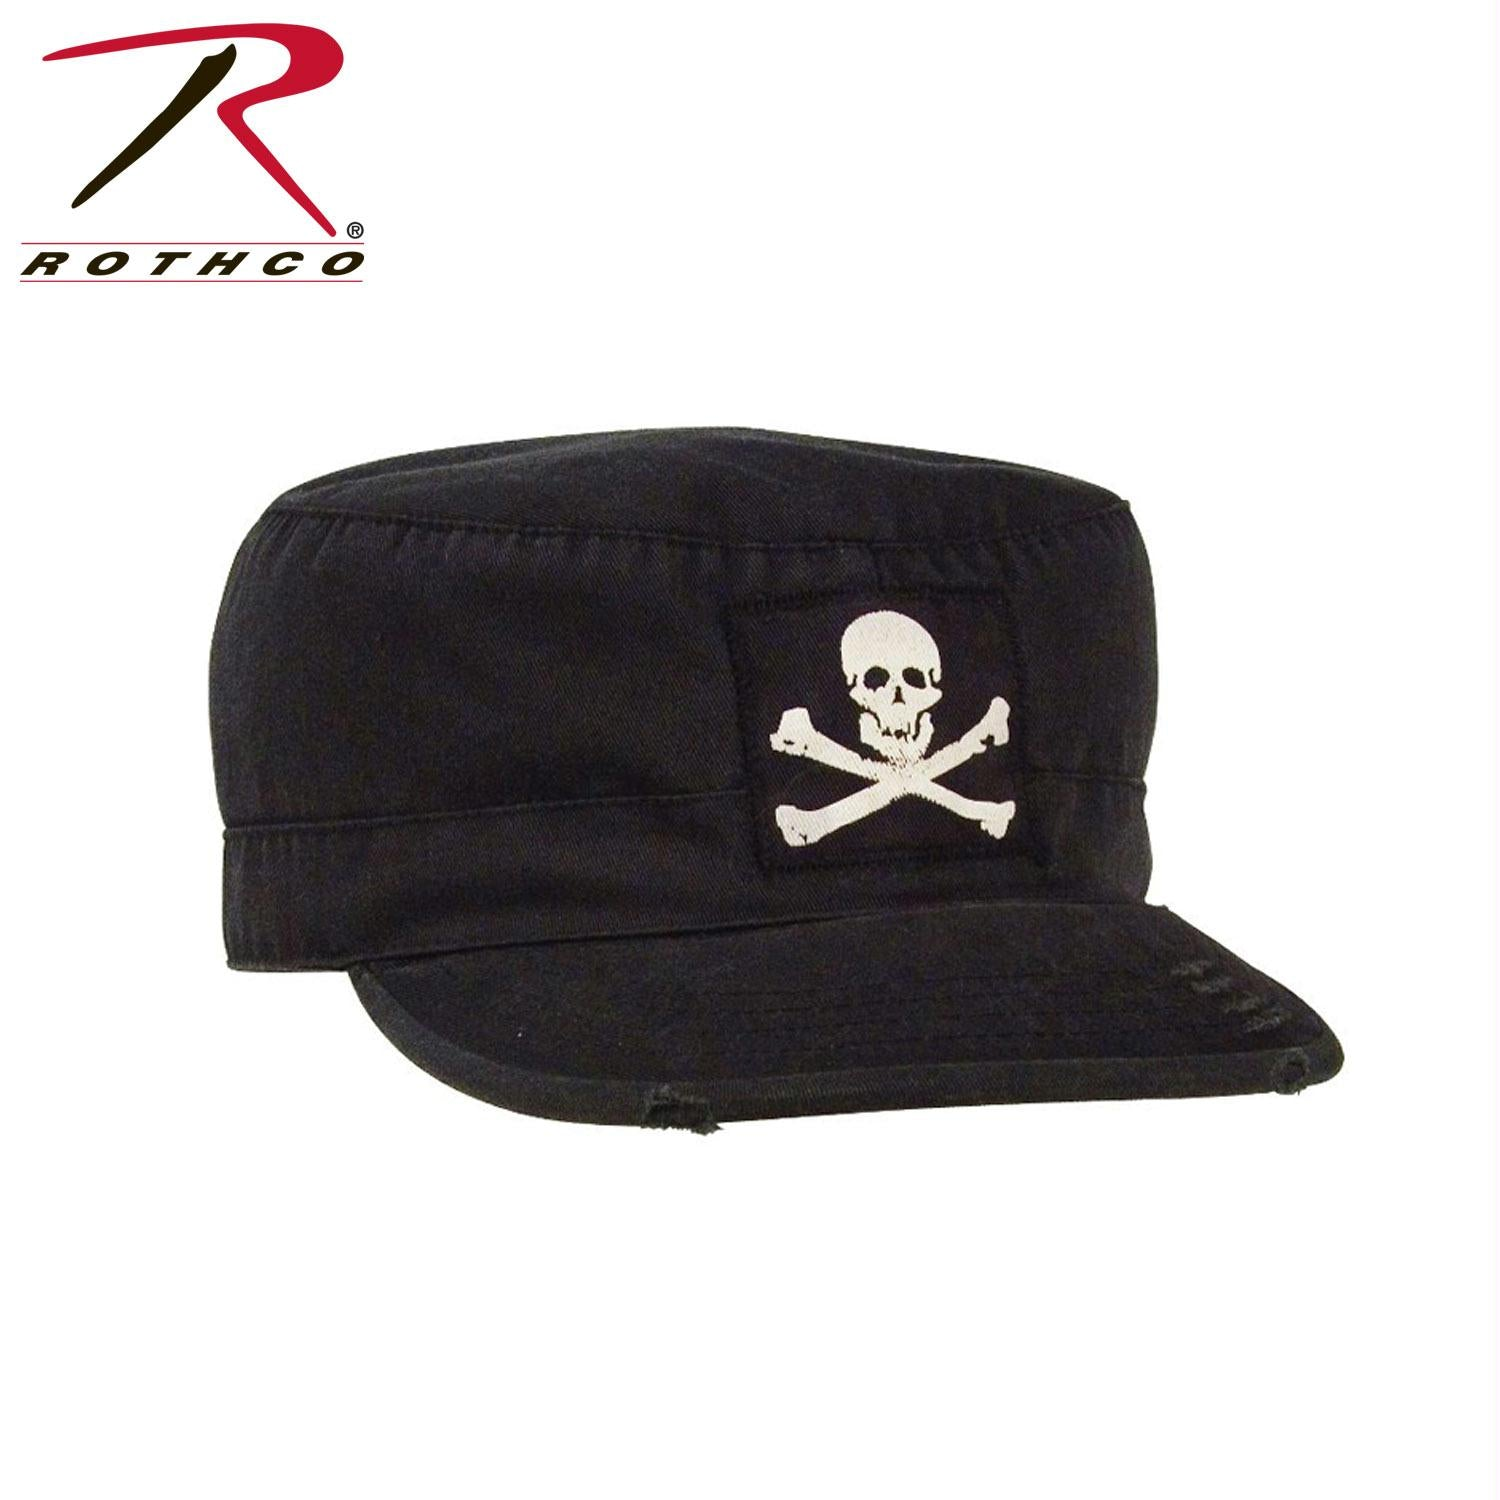 Rothco Vintage Military Fatigue Cap With Jolly Roger - S